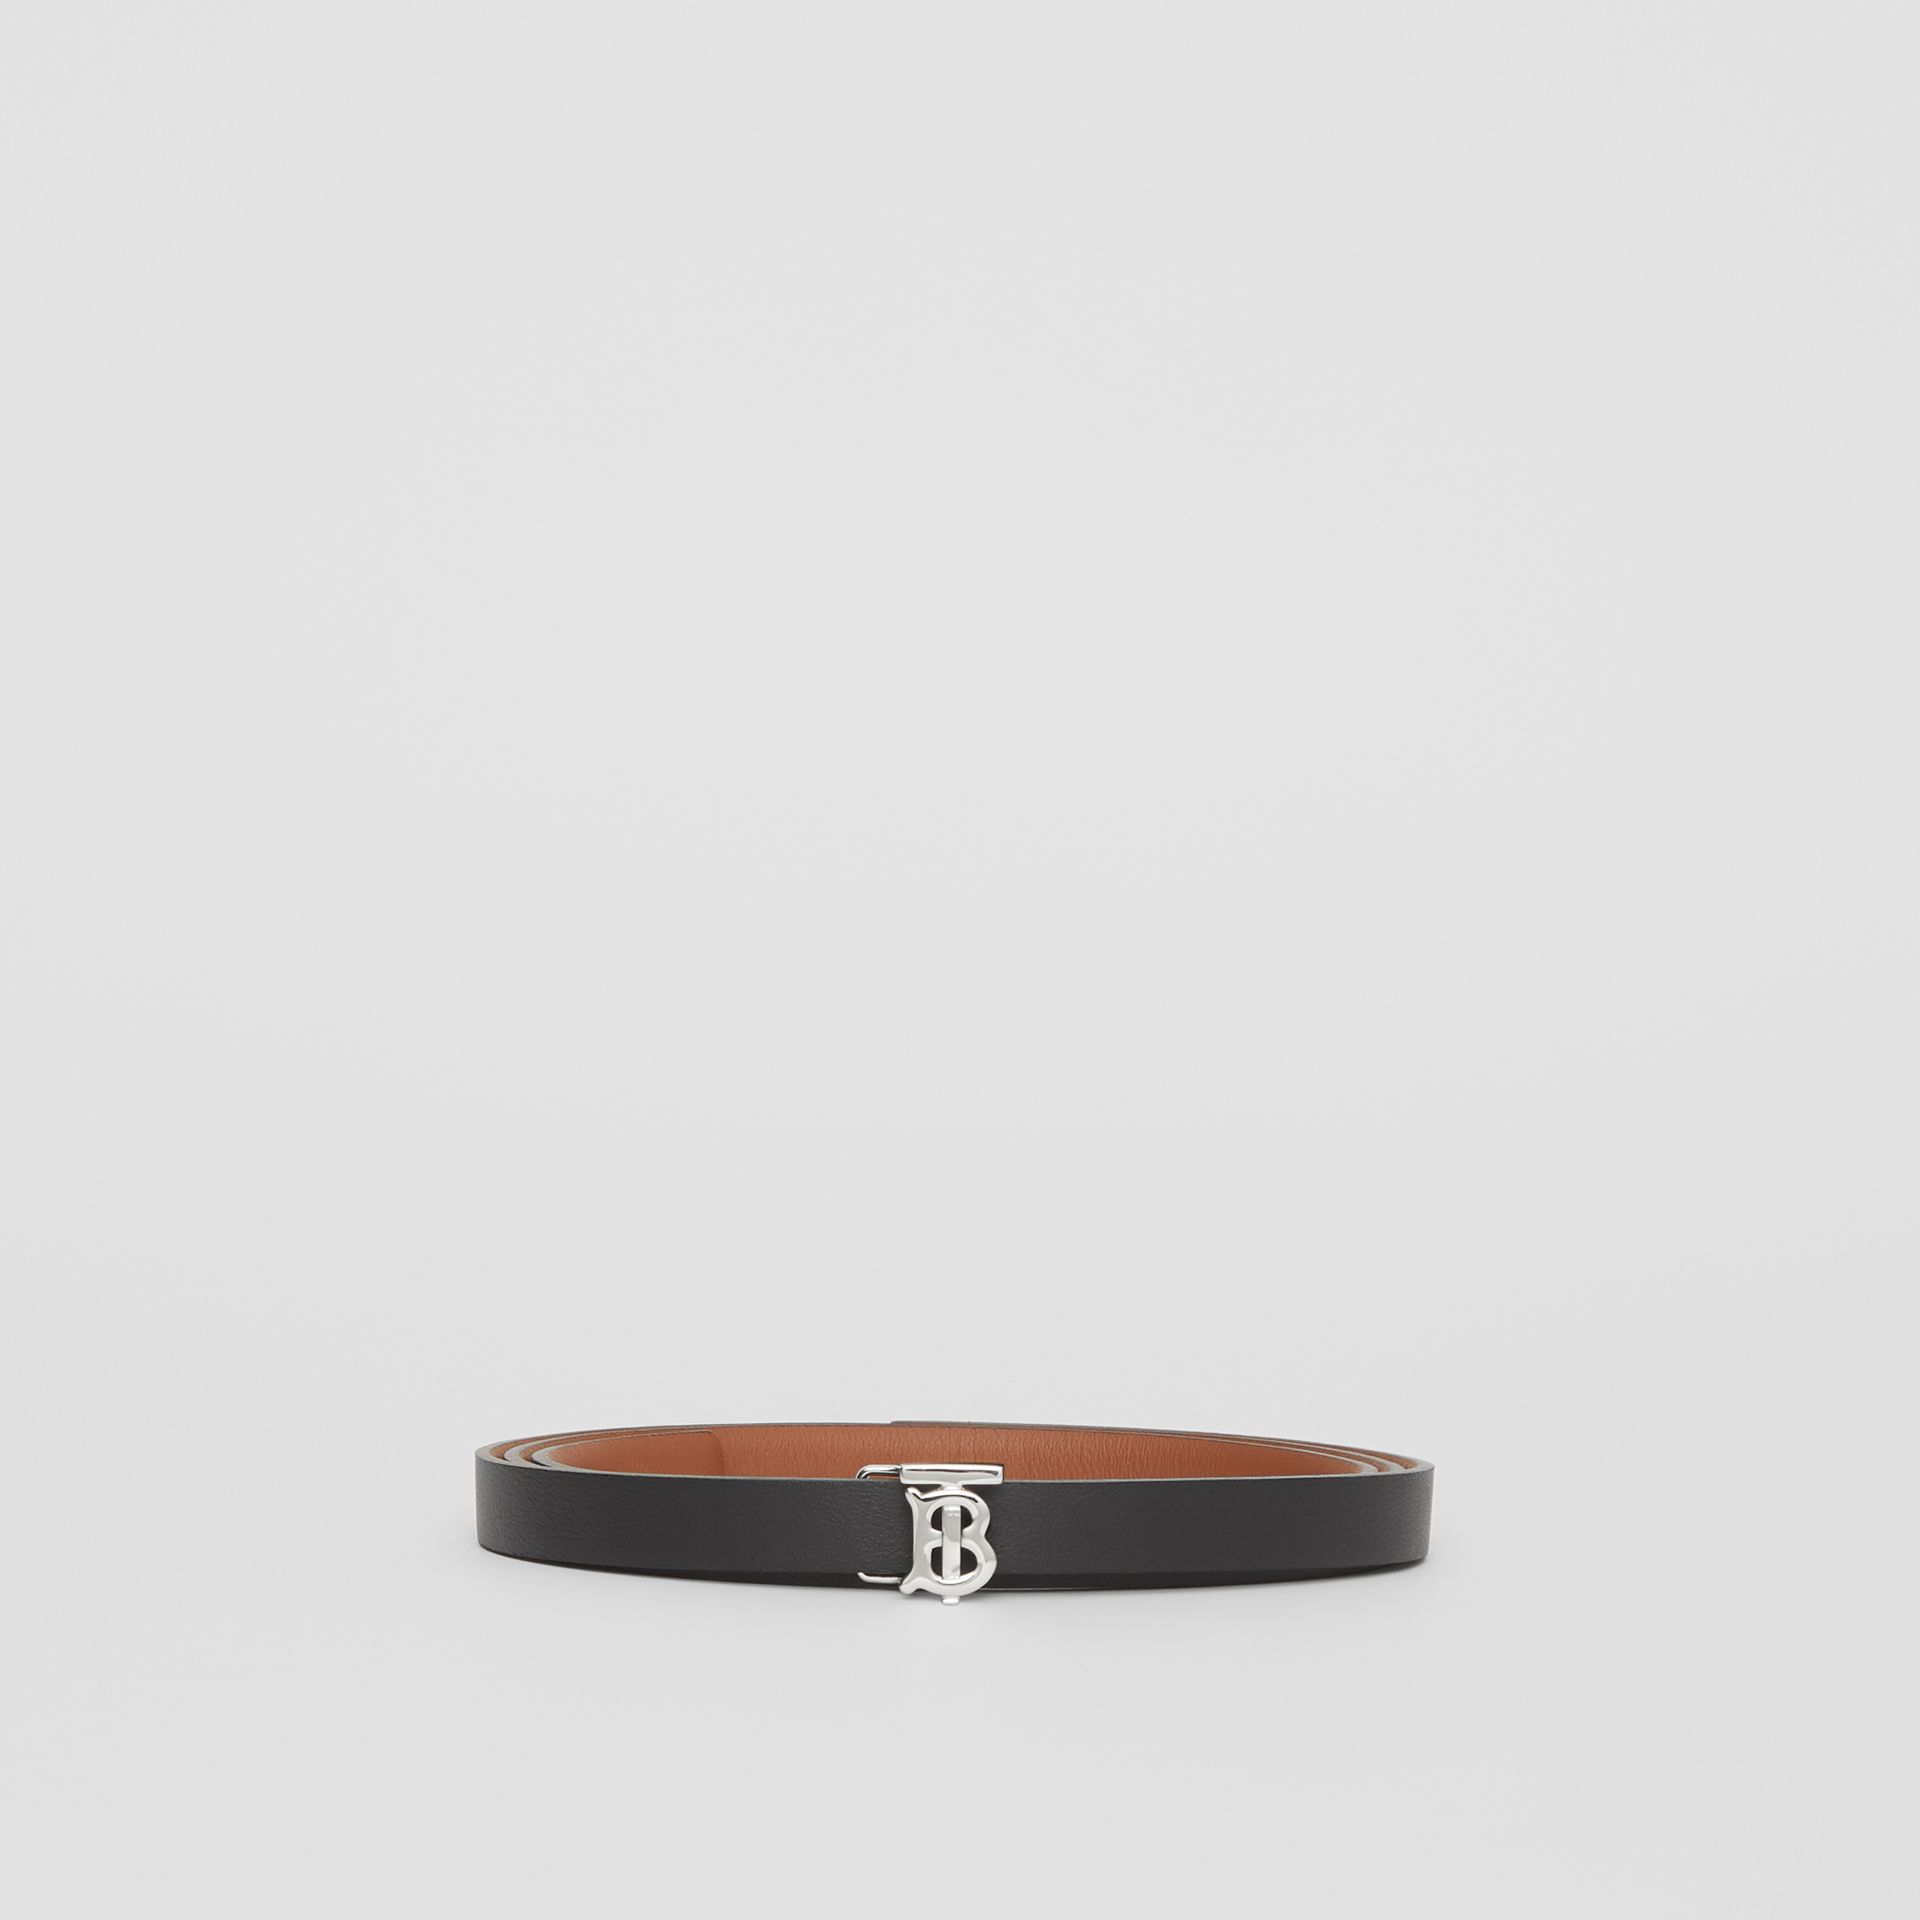 Reversible Monogram Motif Leather Wrap Belt in Malt Brown/black - Women | Burberry Australia - gallery image 6